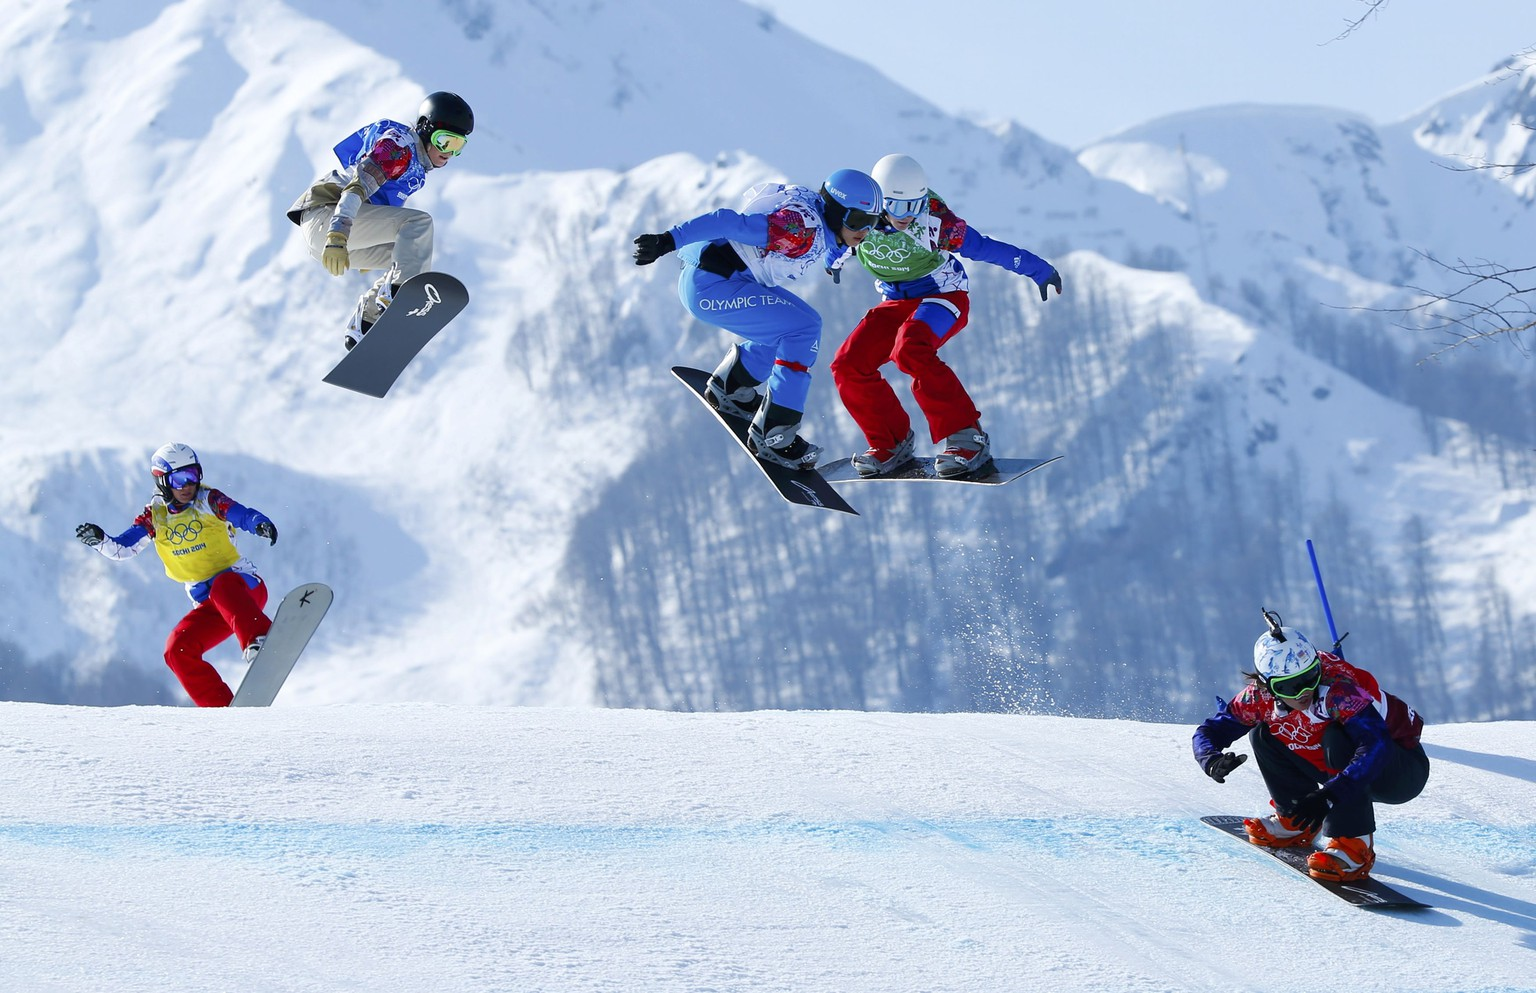 France's Deborah Anthonioz, Faye Gulini of the U.S., Austria's Maria Ramberger, France's Nelly Moenne Loccoz and Eva Samkova (L-R) of the Czech Republic compete during the women's snowboard cross semi-finals at the 2014 Sochi Winter Olympic Games in Rosa Khutor February 16, 2014.               REUTERS/Mike Blake (RUSSIA  - Tags: OLYMPICS SPORT SNOWBOARDING)